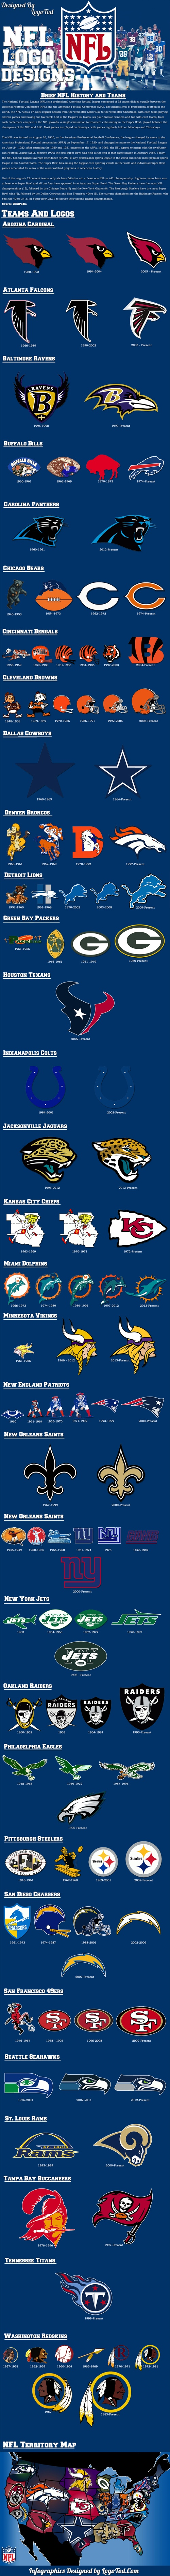 Infographics-NFL-Final